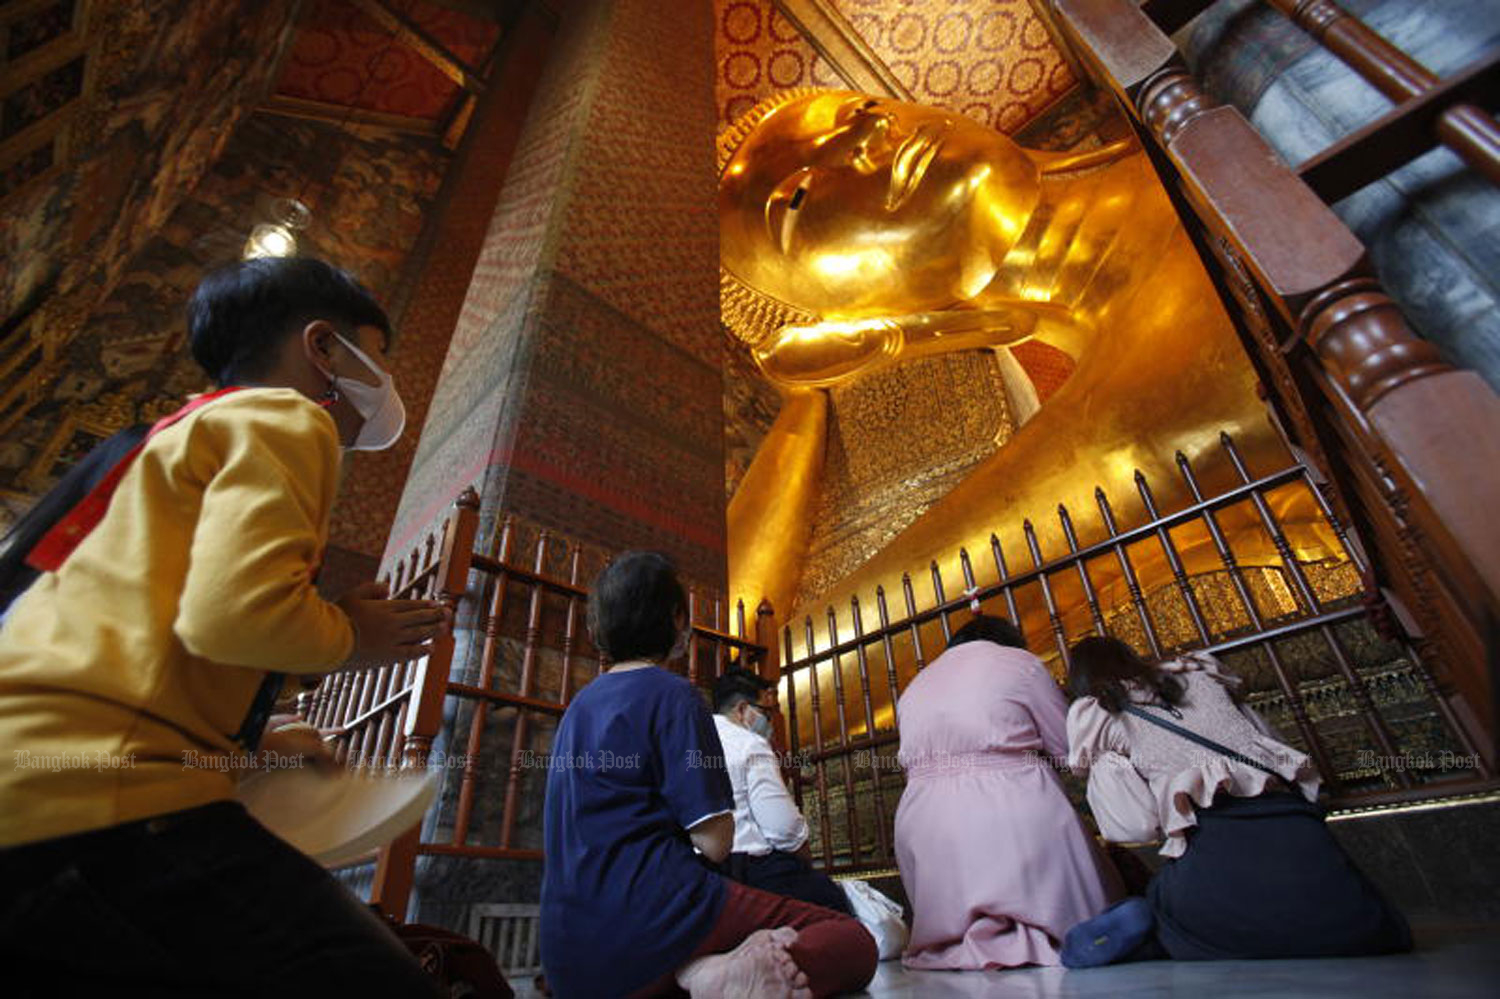 People pay homage to the giant reclining Buddha statue at Wat Phra Chetuphon Wimon Mangkhalaram (Wat Pho) in Bangkok on Friday. (Photo by Nutthawat Wicheanbut)